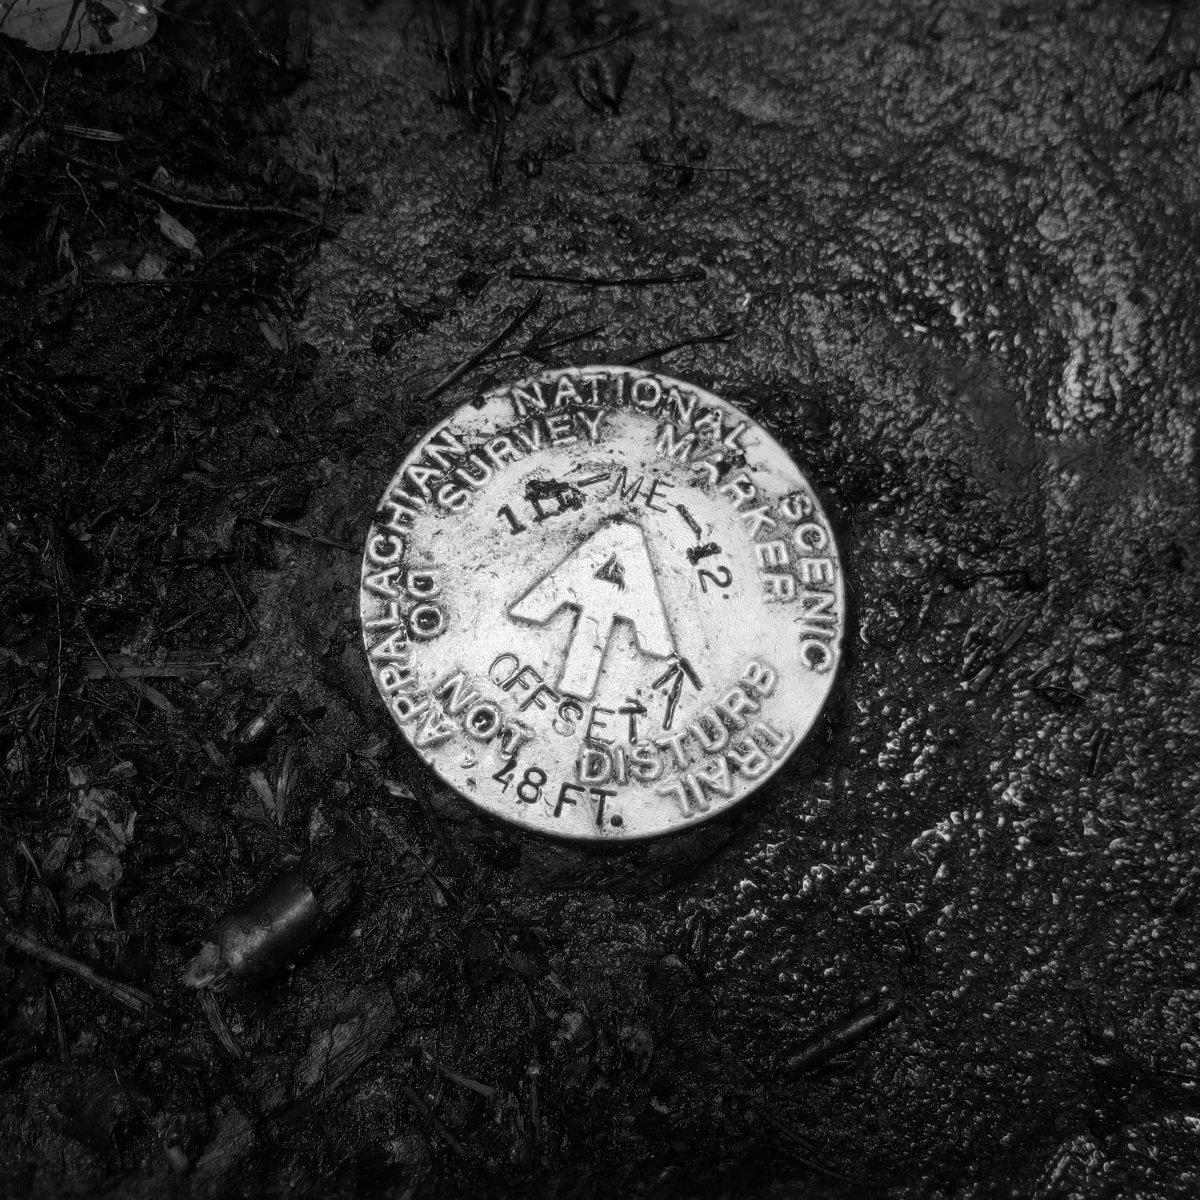 20180906-Sugarloaf-AT-Marker-BW